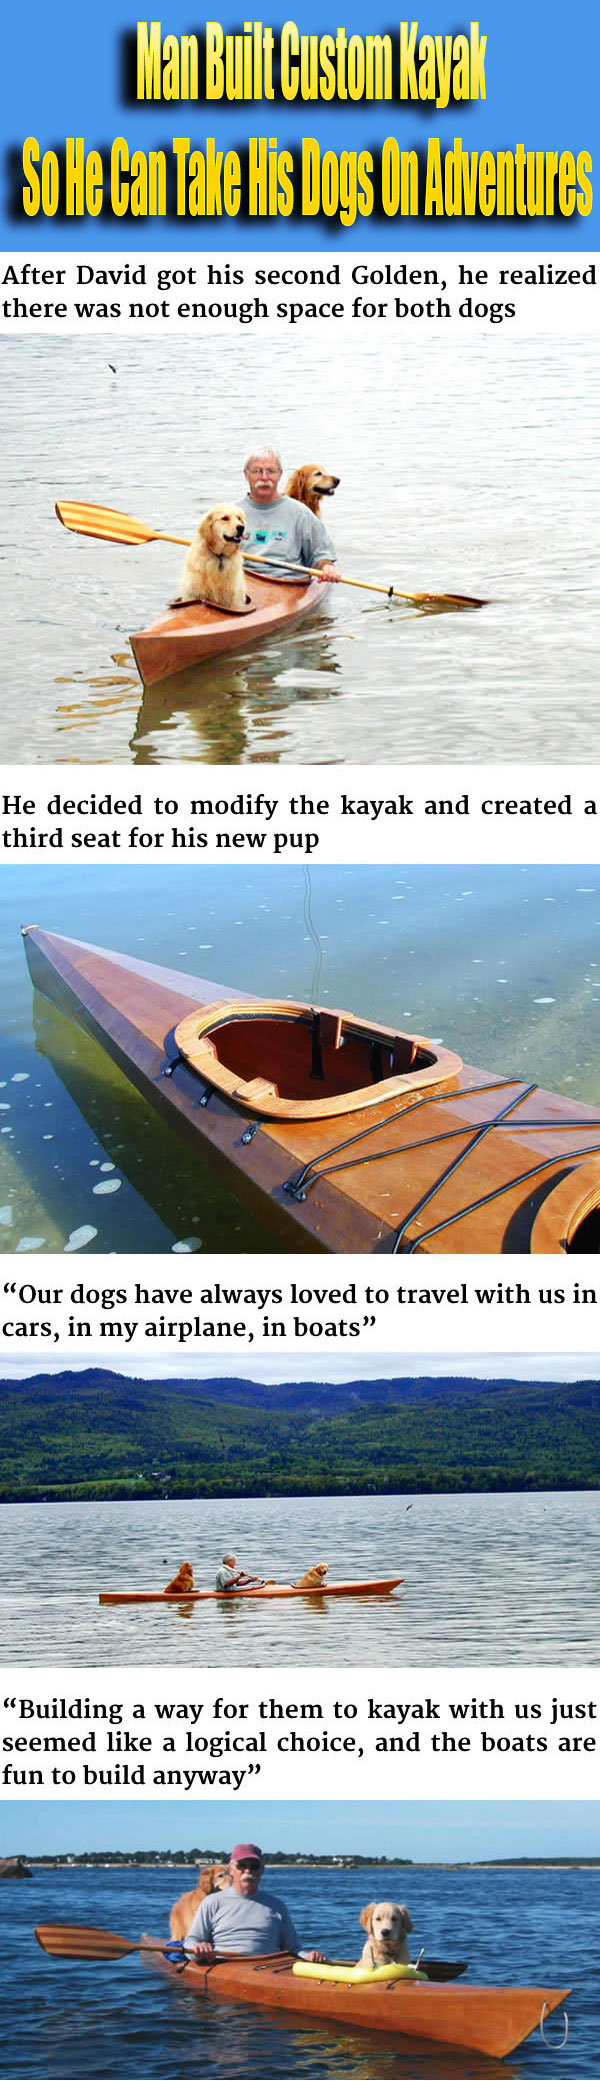 Man Built Custom Kayak So He Can Take His Dogs On Adventures